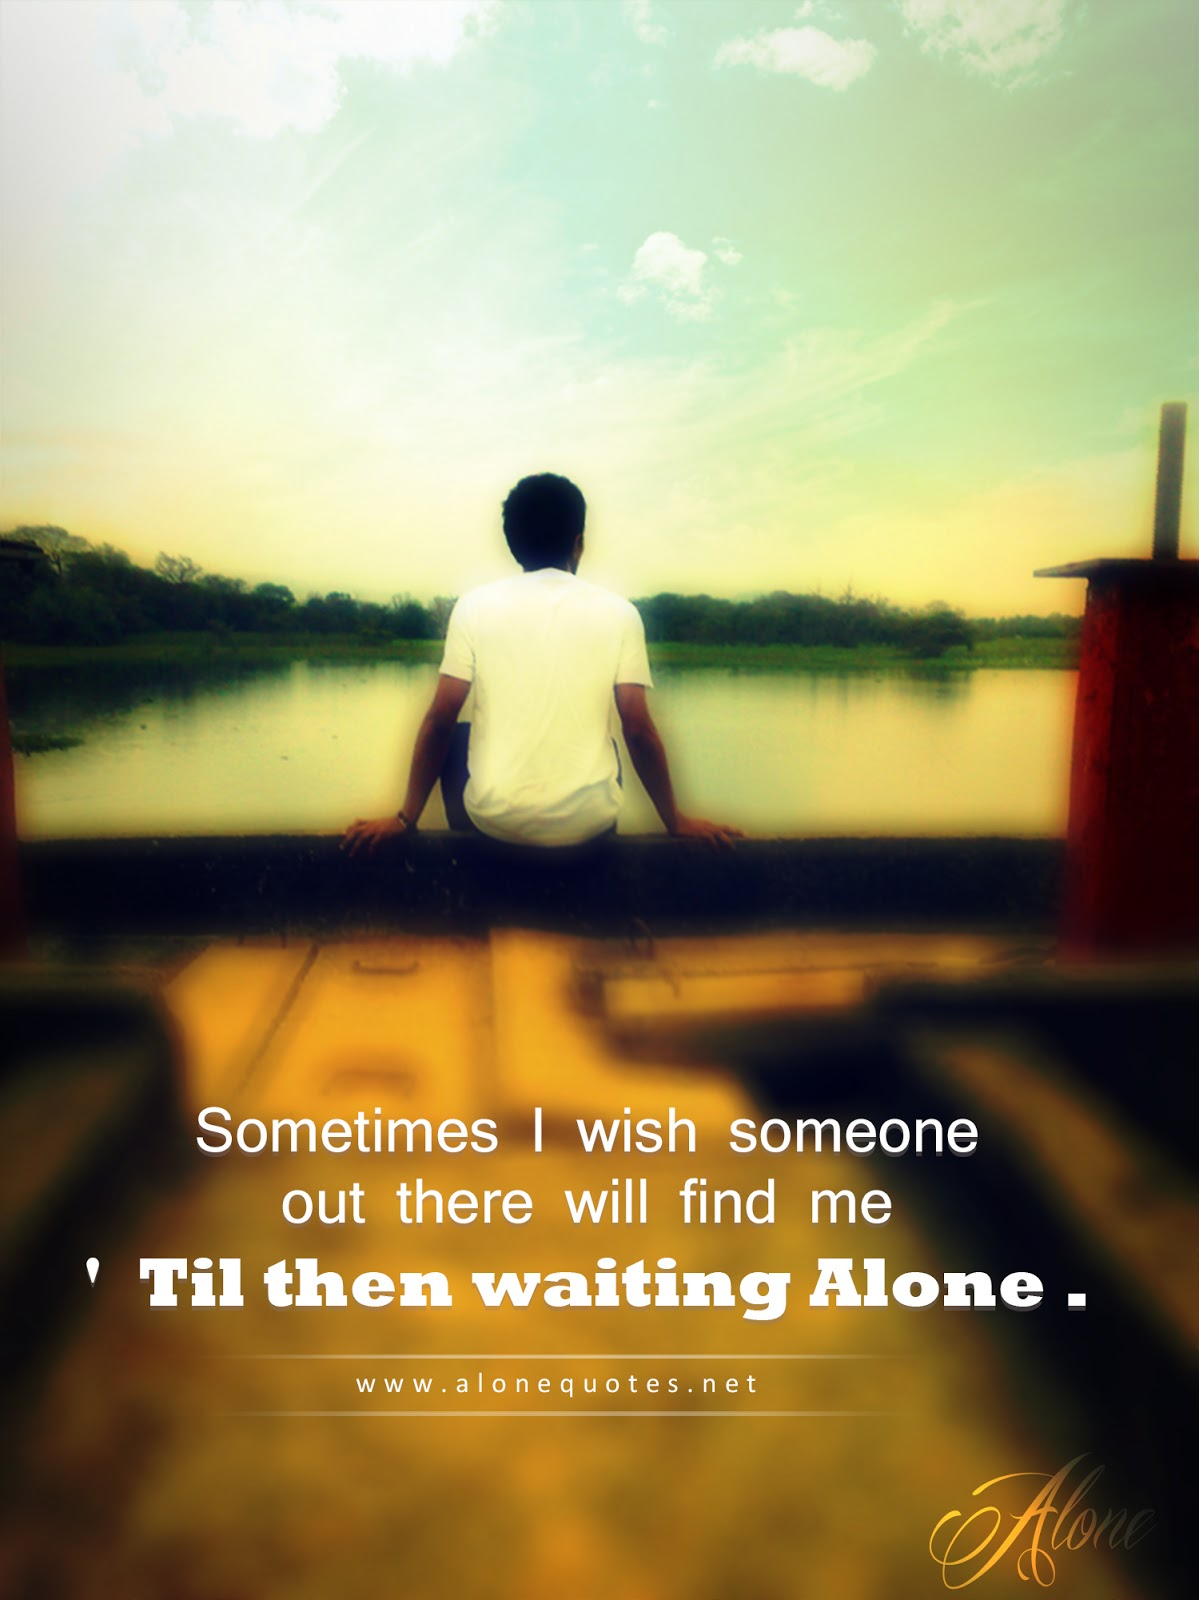 Am Alone Boy Wallpaper Alone boy full hd wallpaper